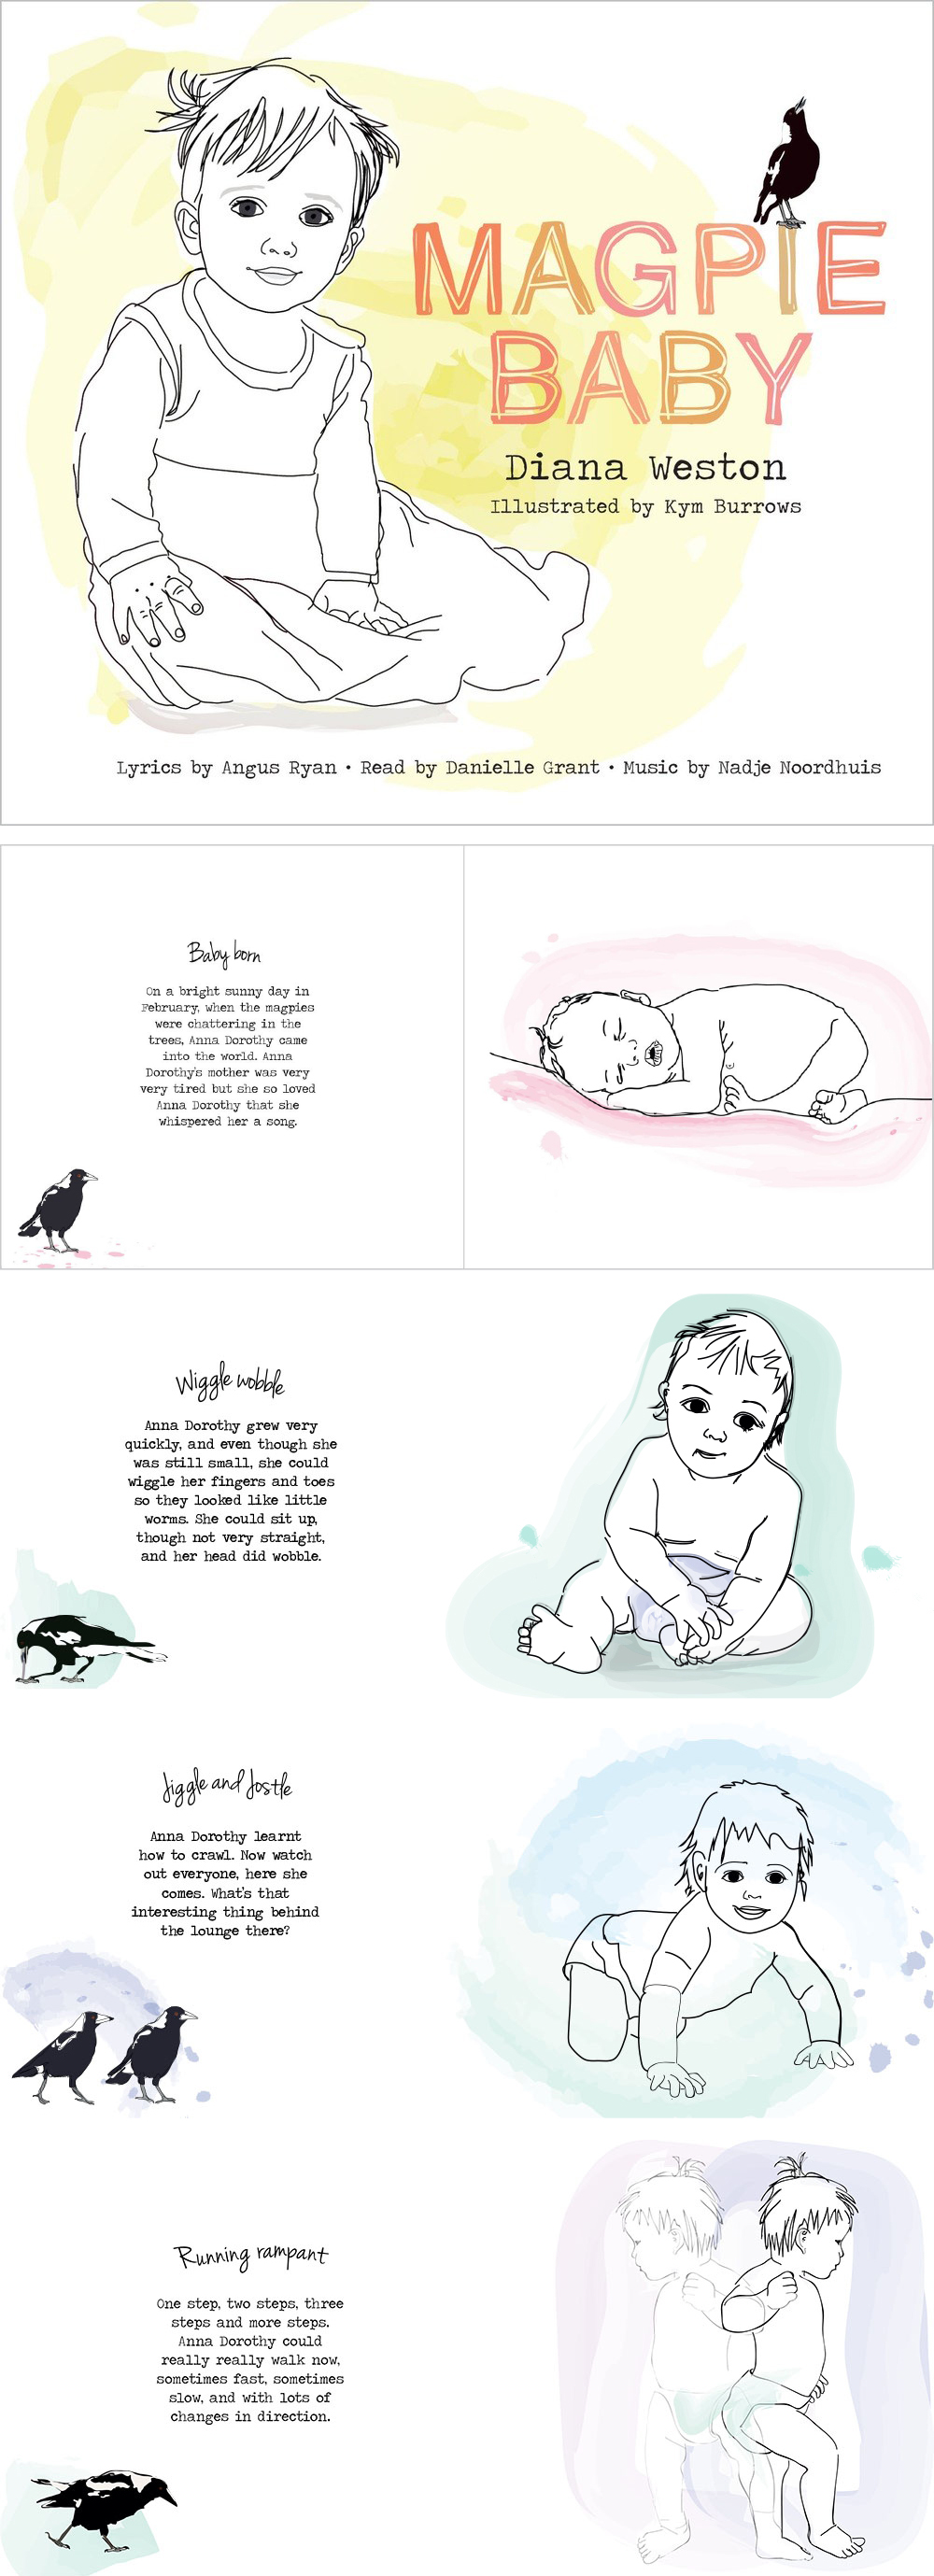 Magpie Baby - A musical storybook by Diana Weston